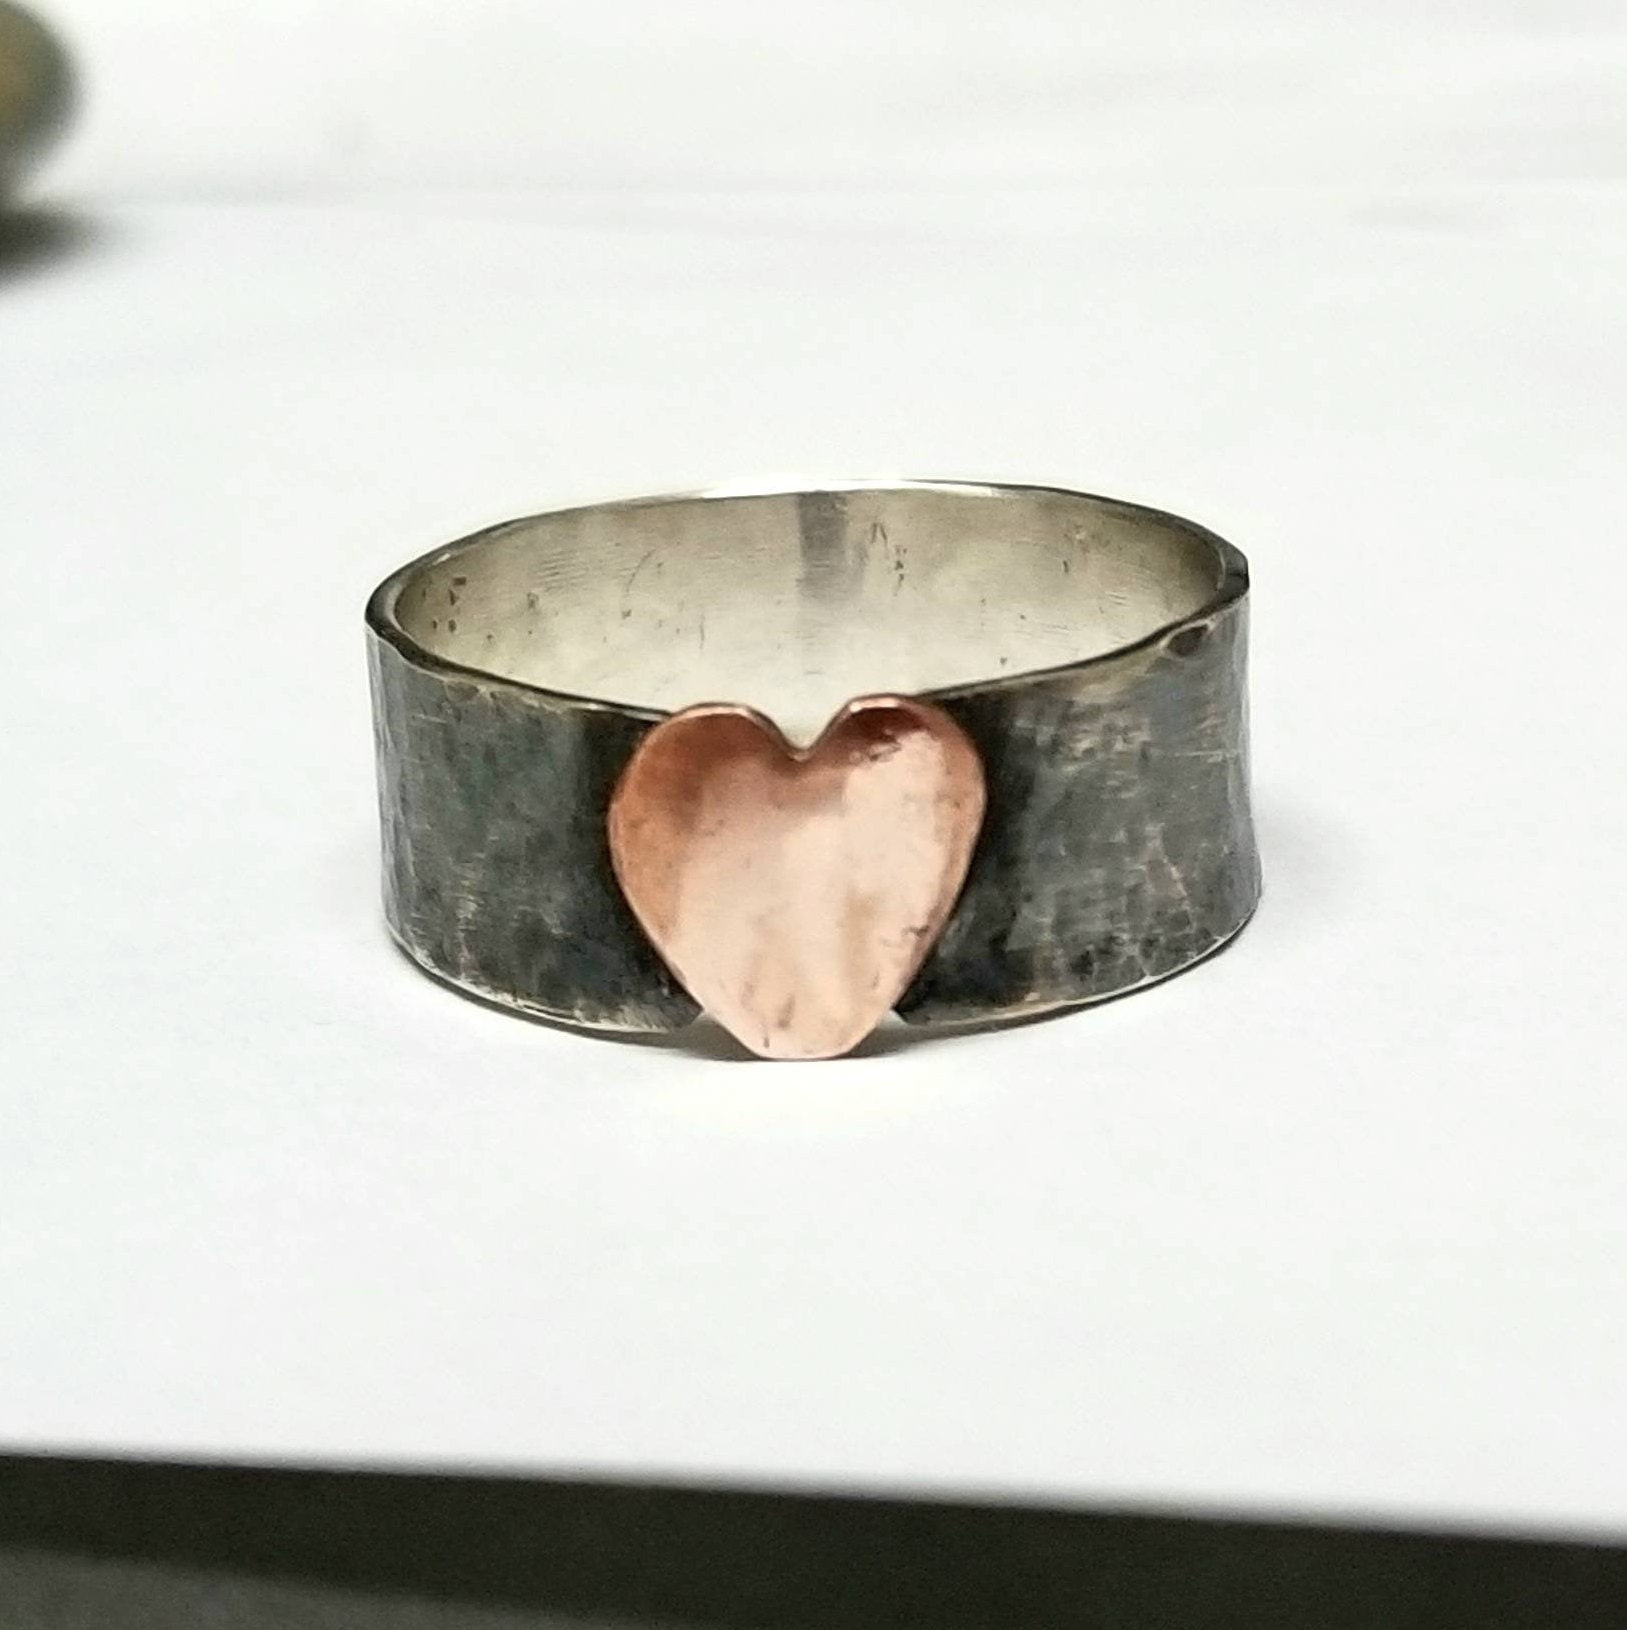 625fb82bdea8f Copper Heart Ring on Oxidized Silver Band, Rustic Jewelry, Gift For Her,  Unisex, Ready To Ship in Size 7, Mixed Metal, Maggie McMane Designs